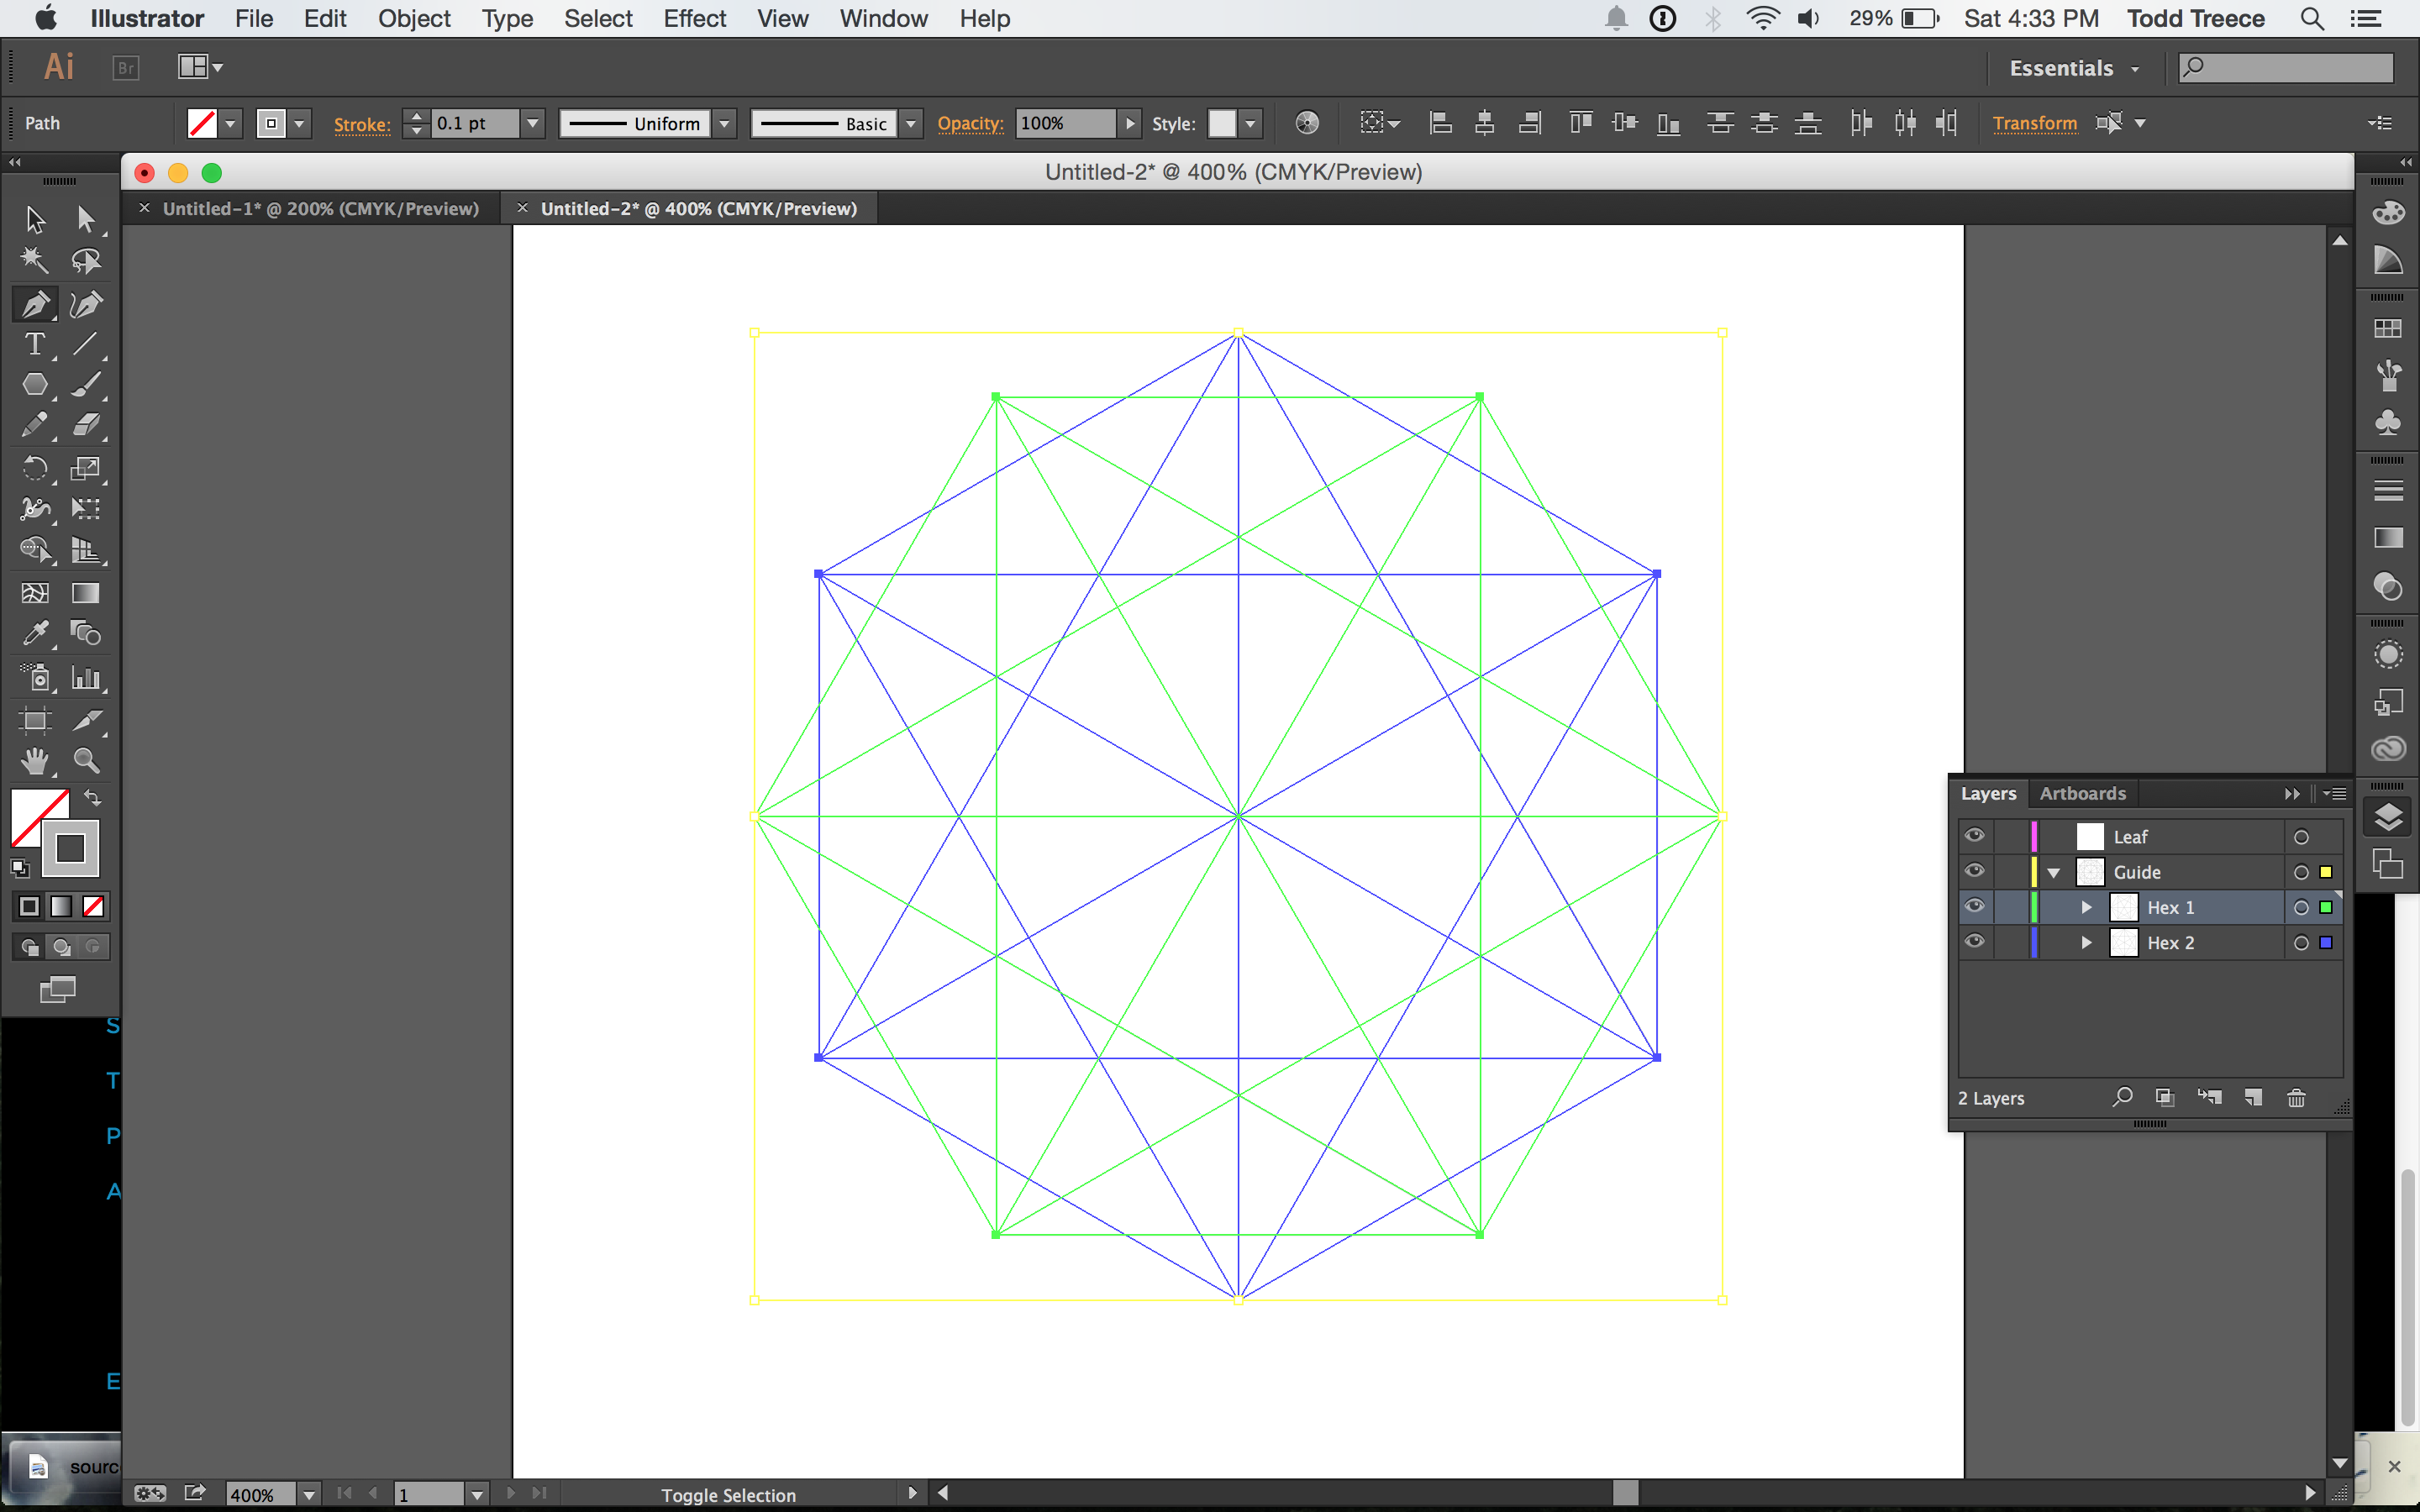 projects_Screen_Shot_2015-03-14_at_4.33.24_PM.png